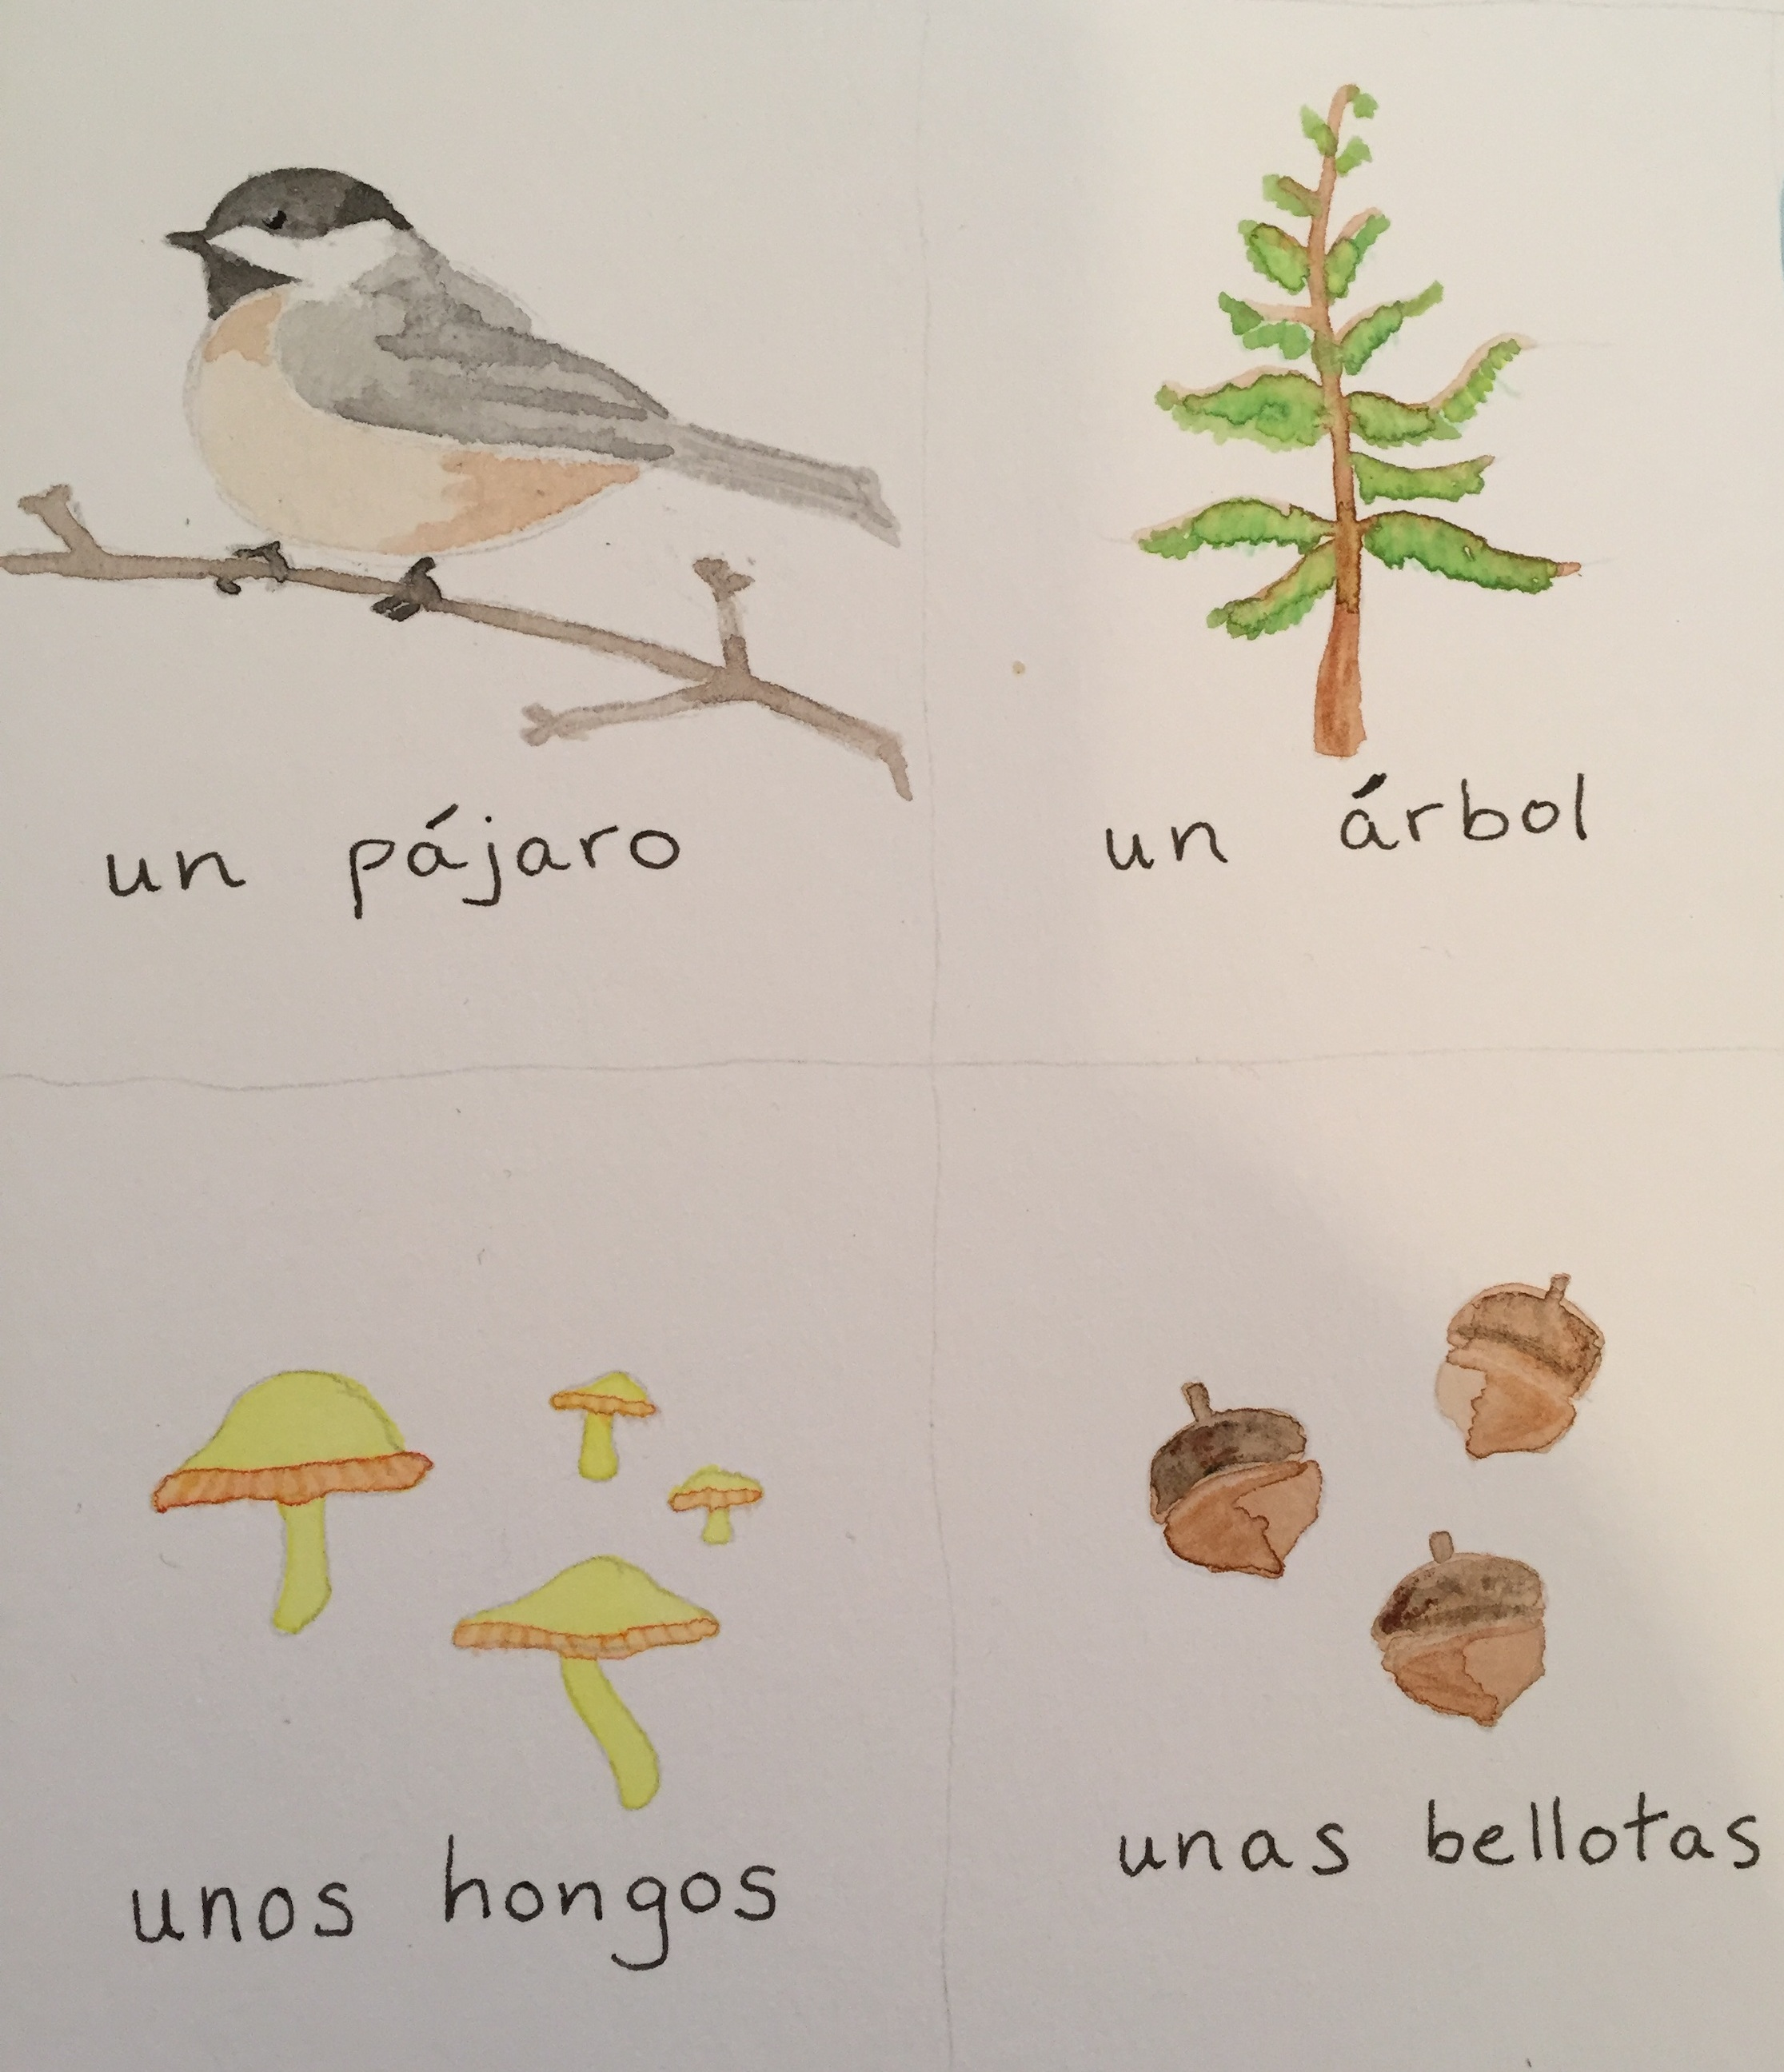 Some illustrated cards with text in Spanish.